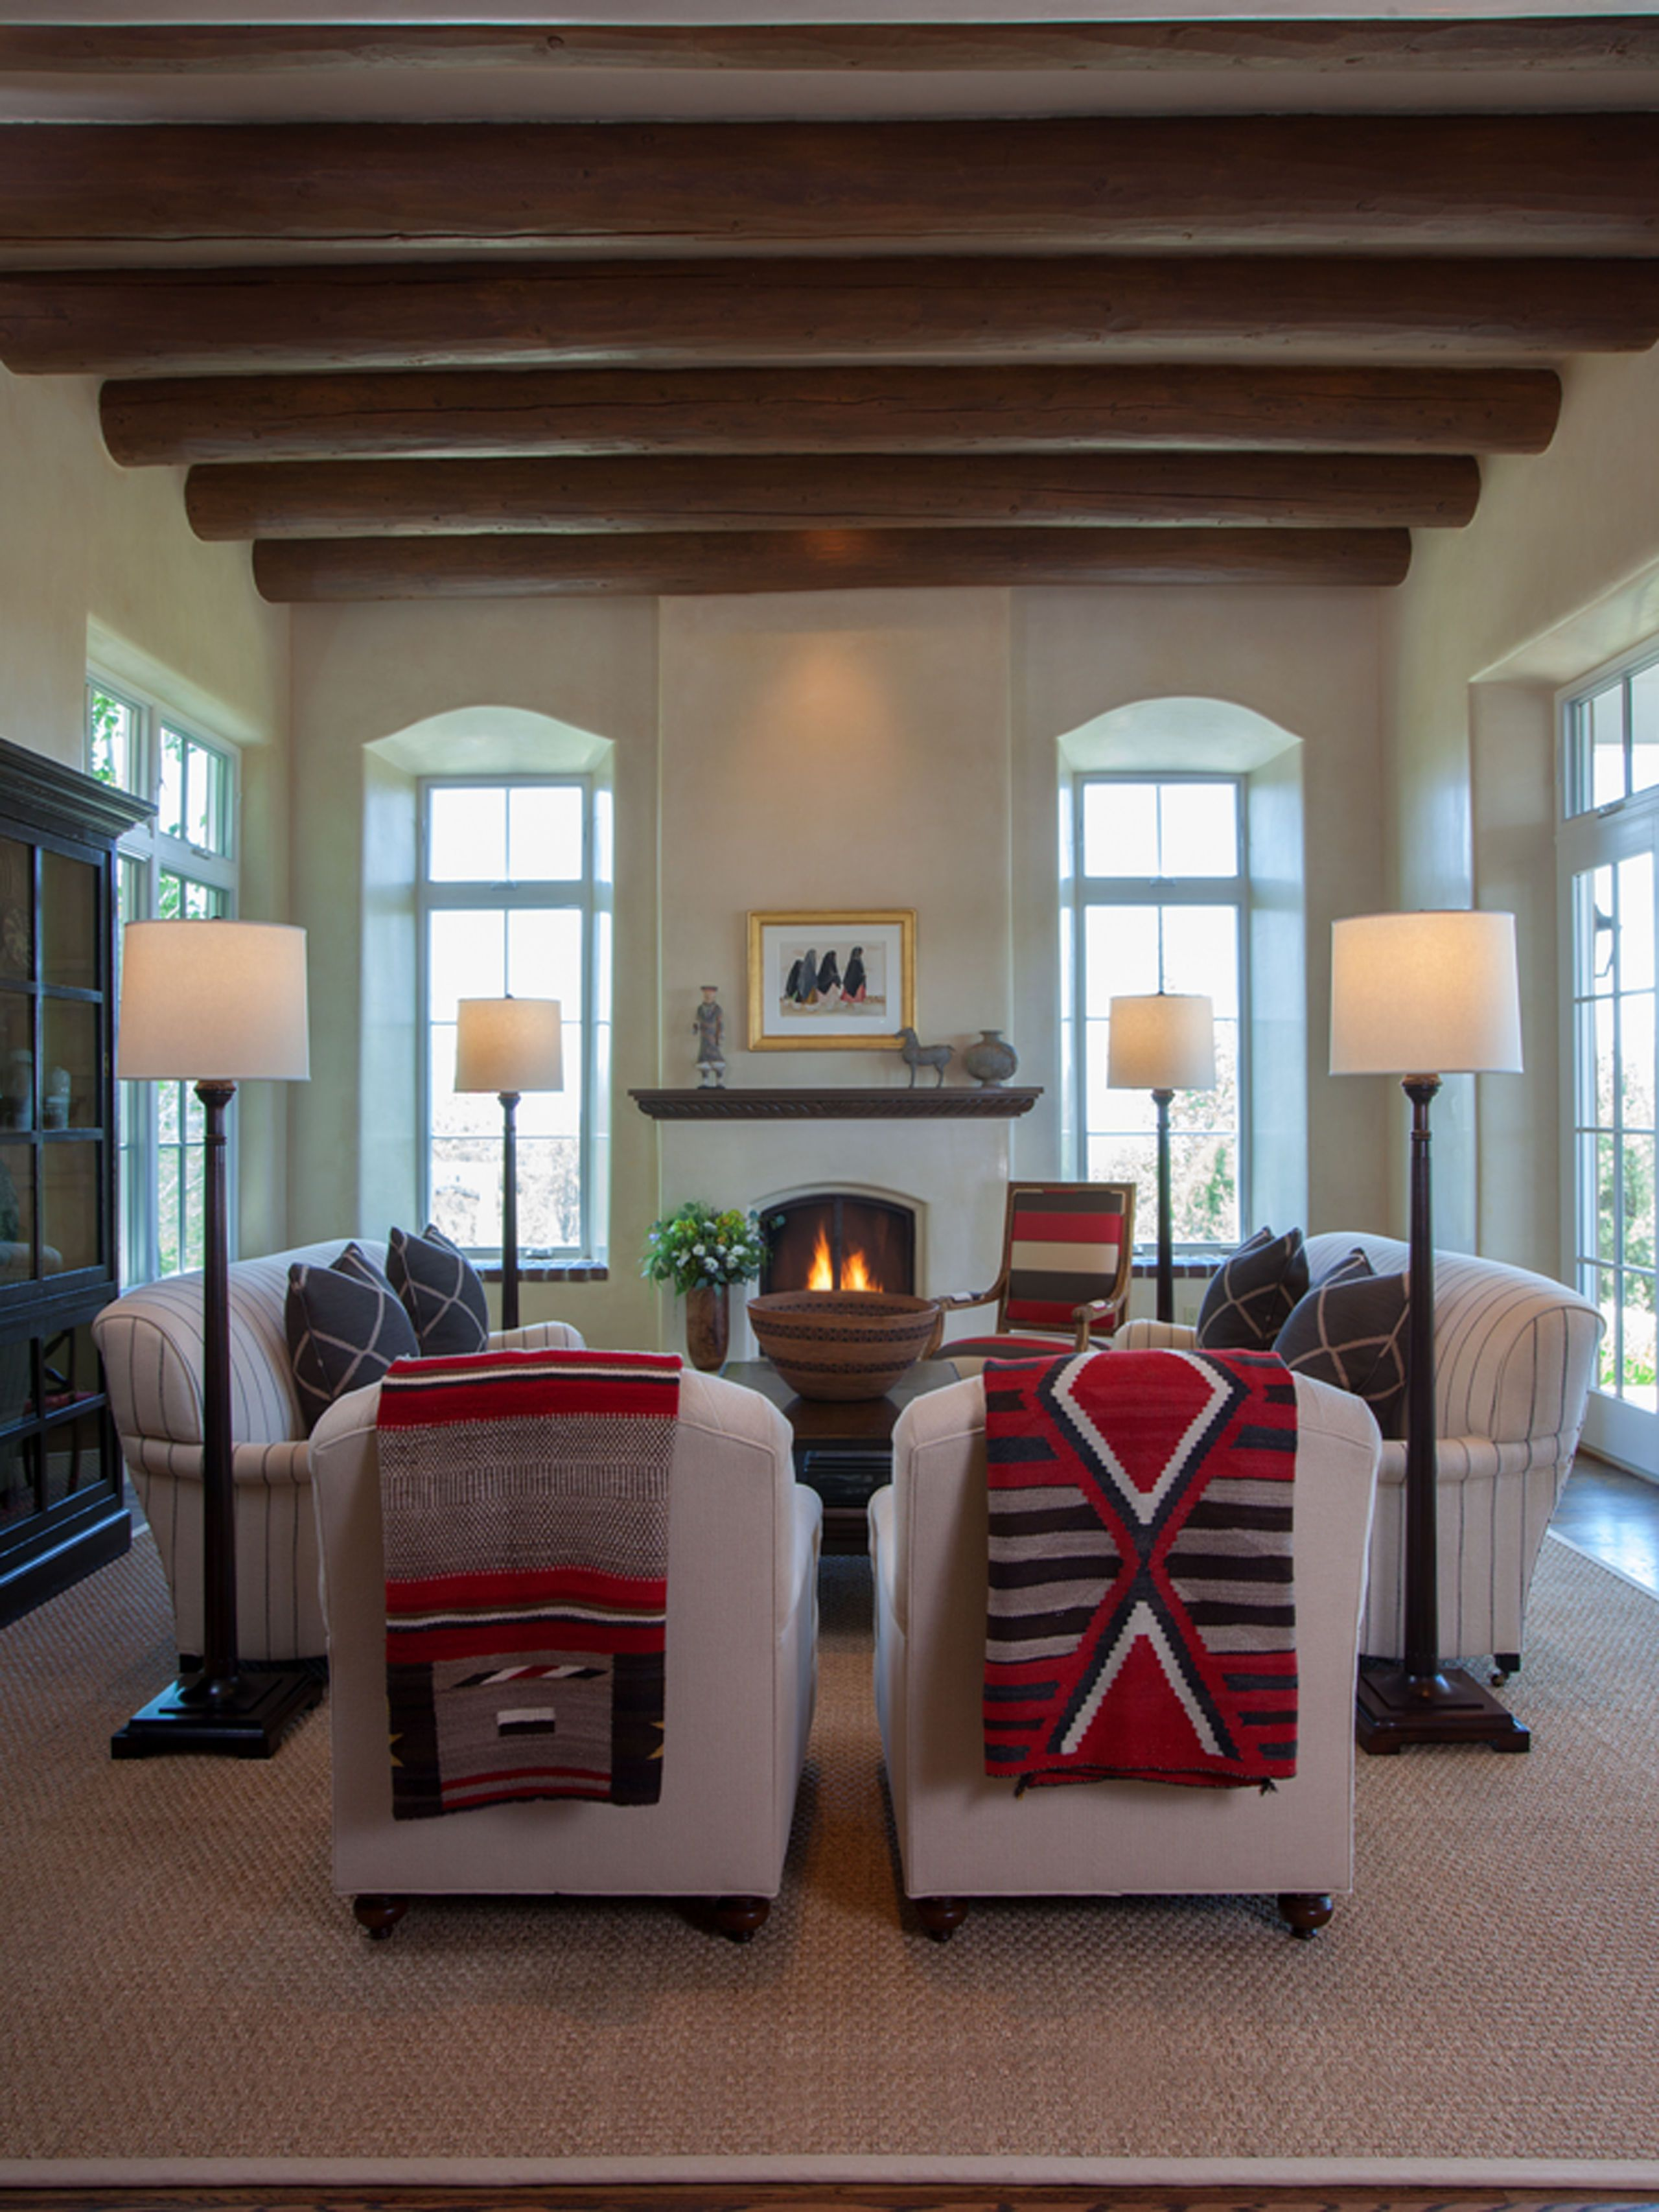 Santa Fe New Mexico Adobe Home - Southwestern Decorating Ideas